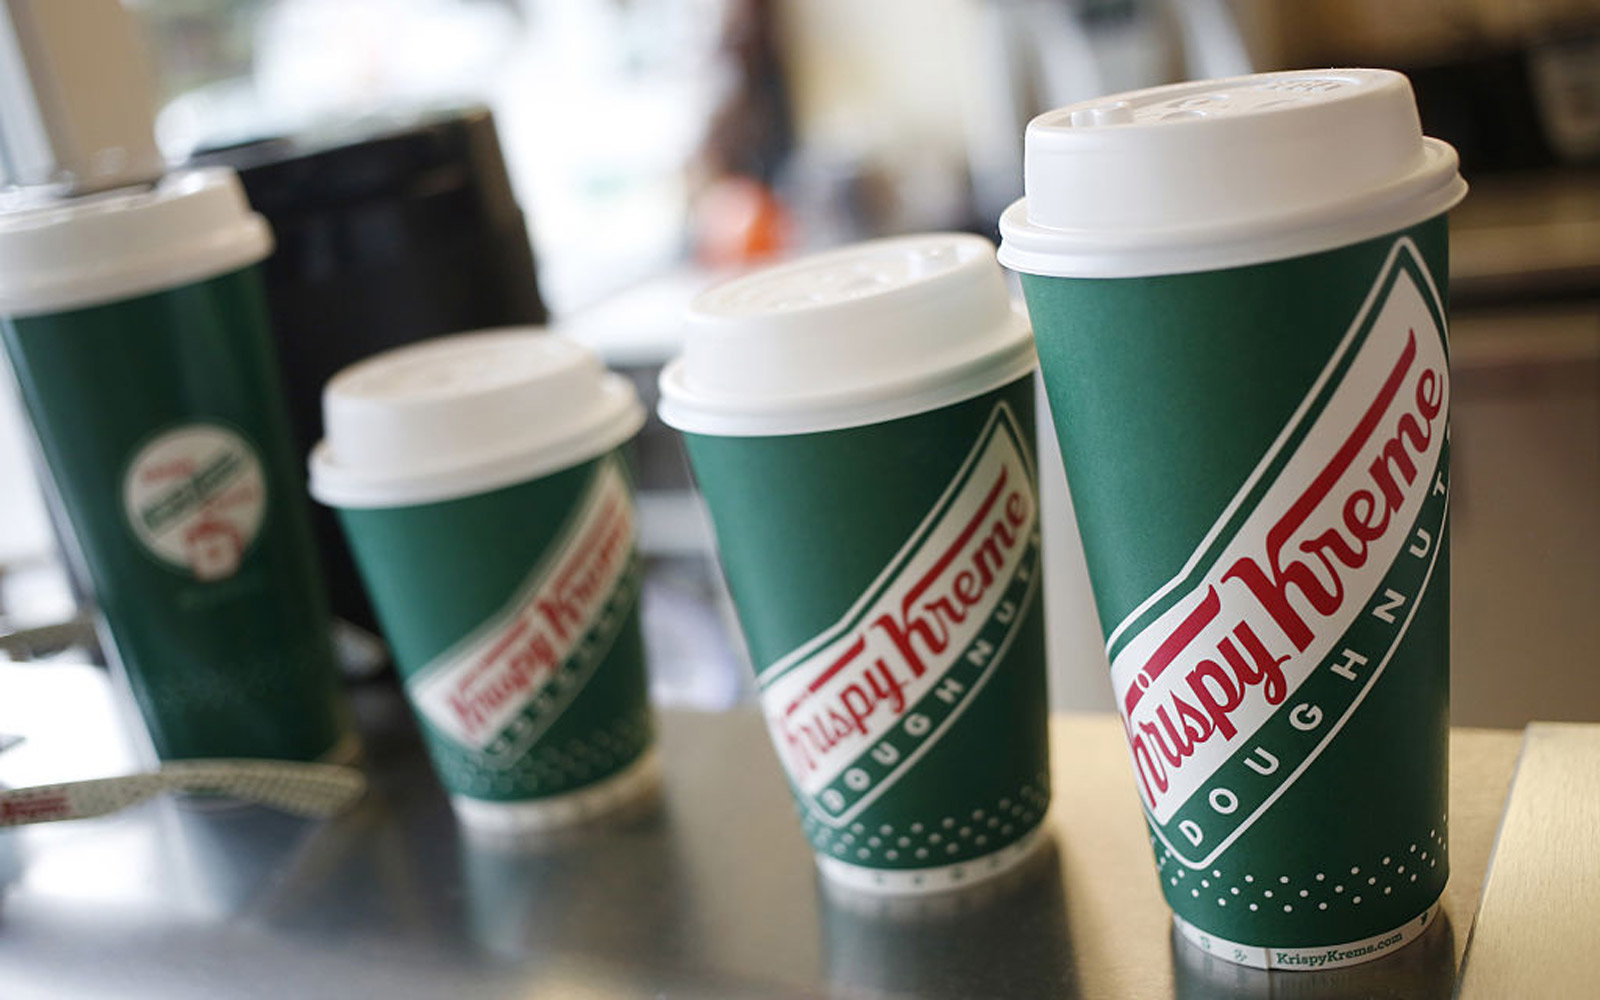 Krispy Kreme Doughnuts To Be Bought by JAB In $1.35 Billion Deal